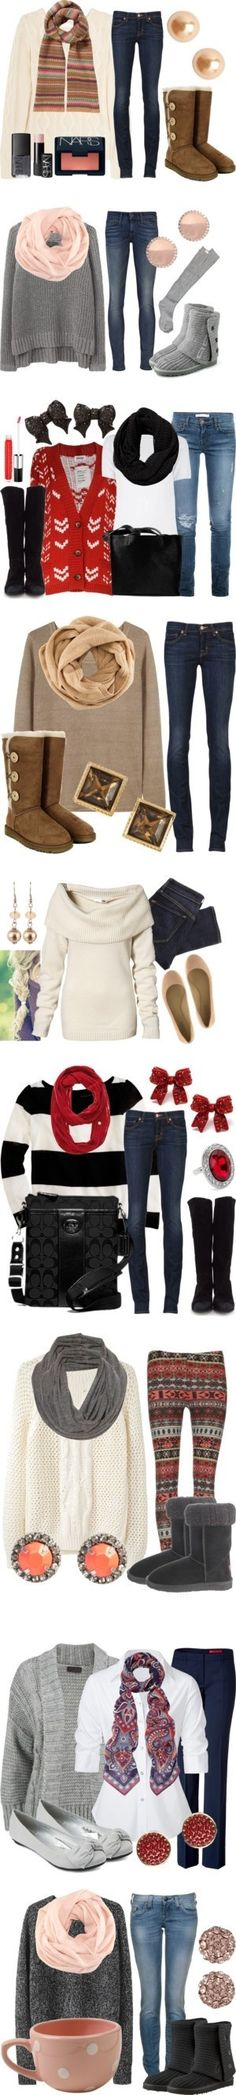 Pinterest / Home clothes fall